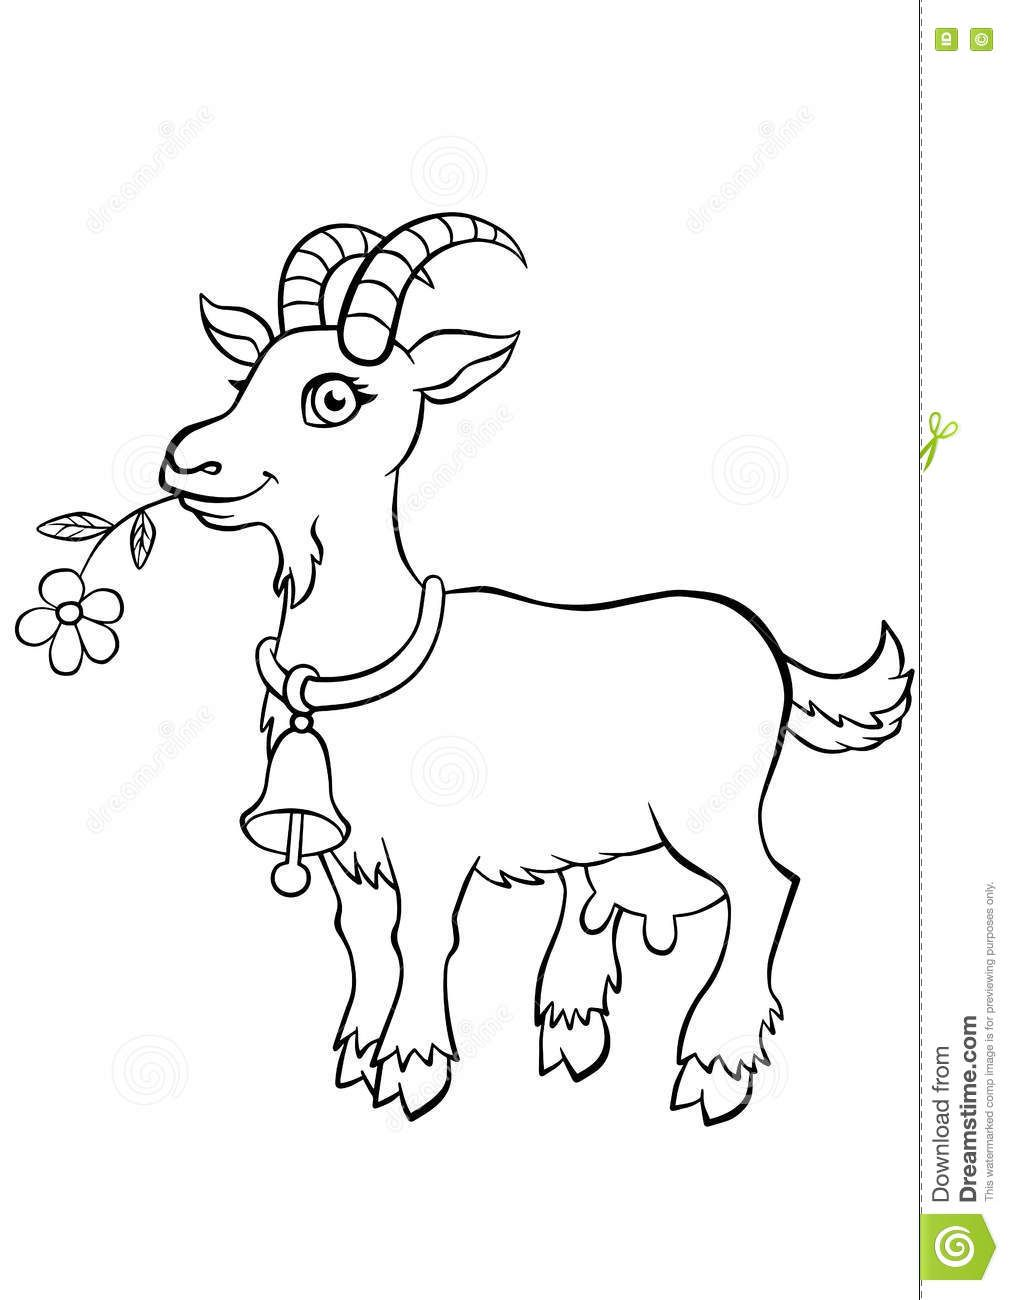 Illustration About Coloring Pages Animals Little Cute Goat Stands And Holds A Flower In The Mouth I Cute Coloring Pages Coloring Pages Animal Coloring Pages